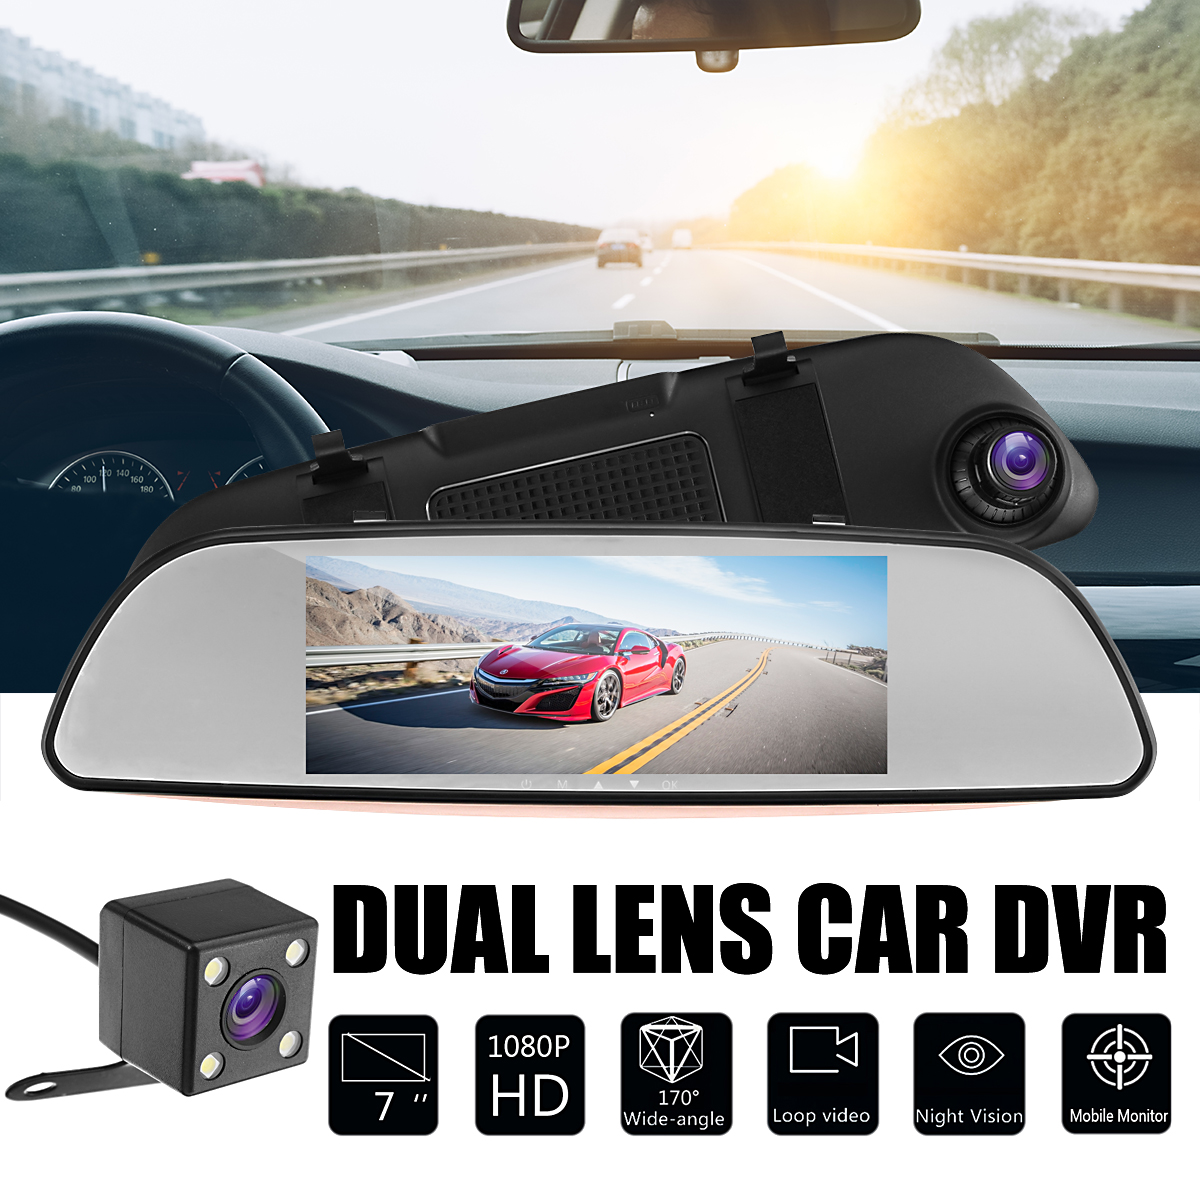 7 TFT LCD Screen FHD 1080P Dual Lens Car DVR 170 Degree Wide Angle Dash Cam Video Recorder + Parking Rear View Mirror Camera